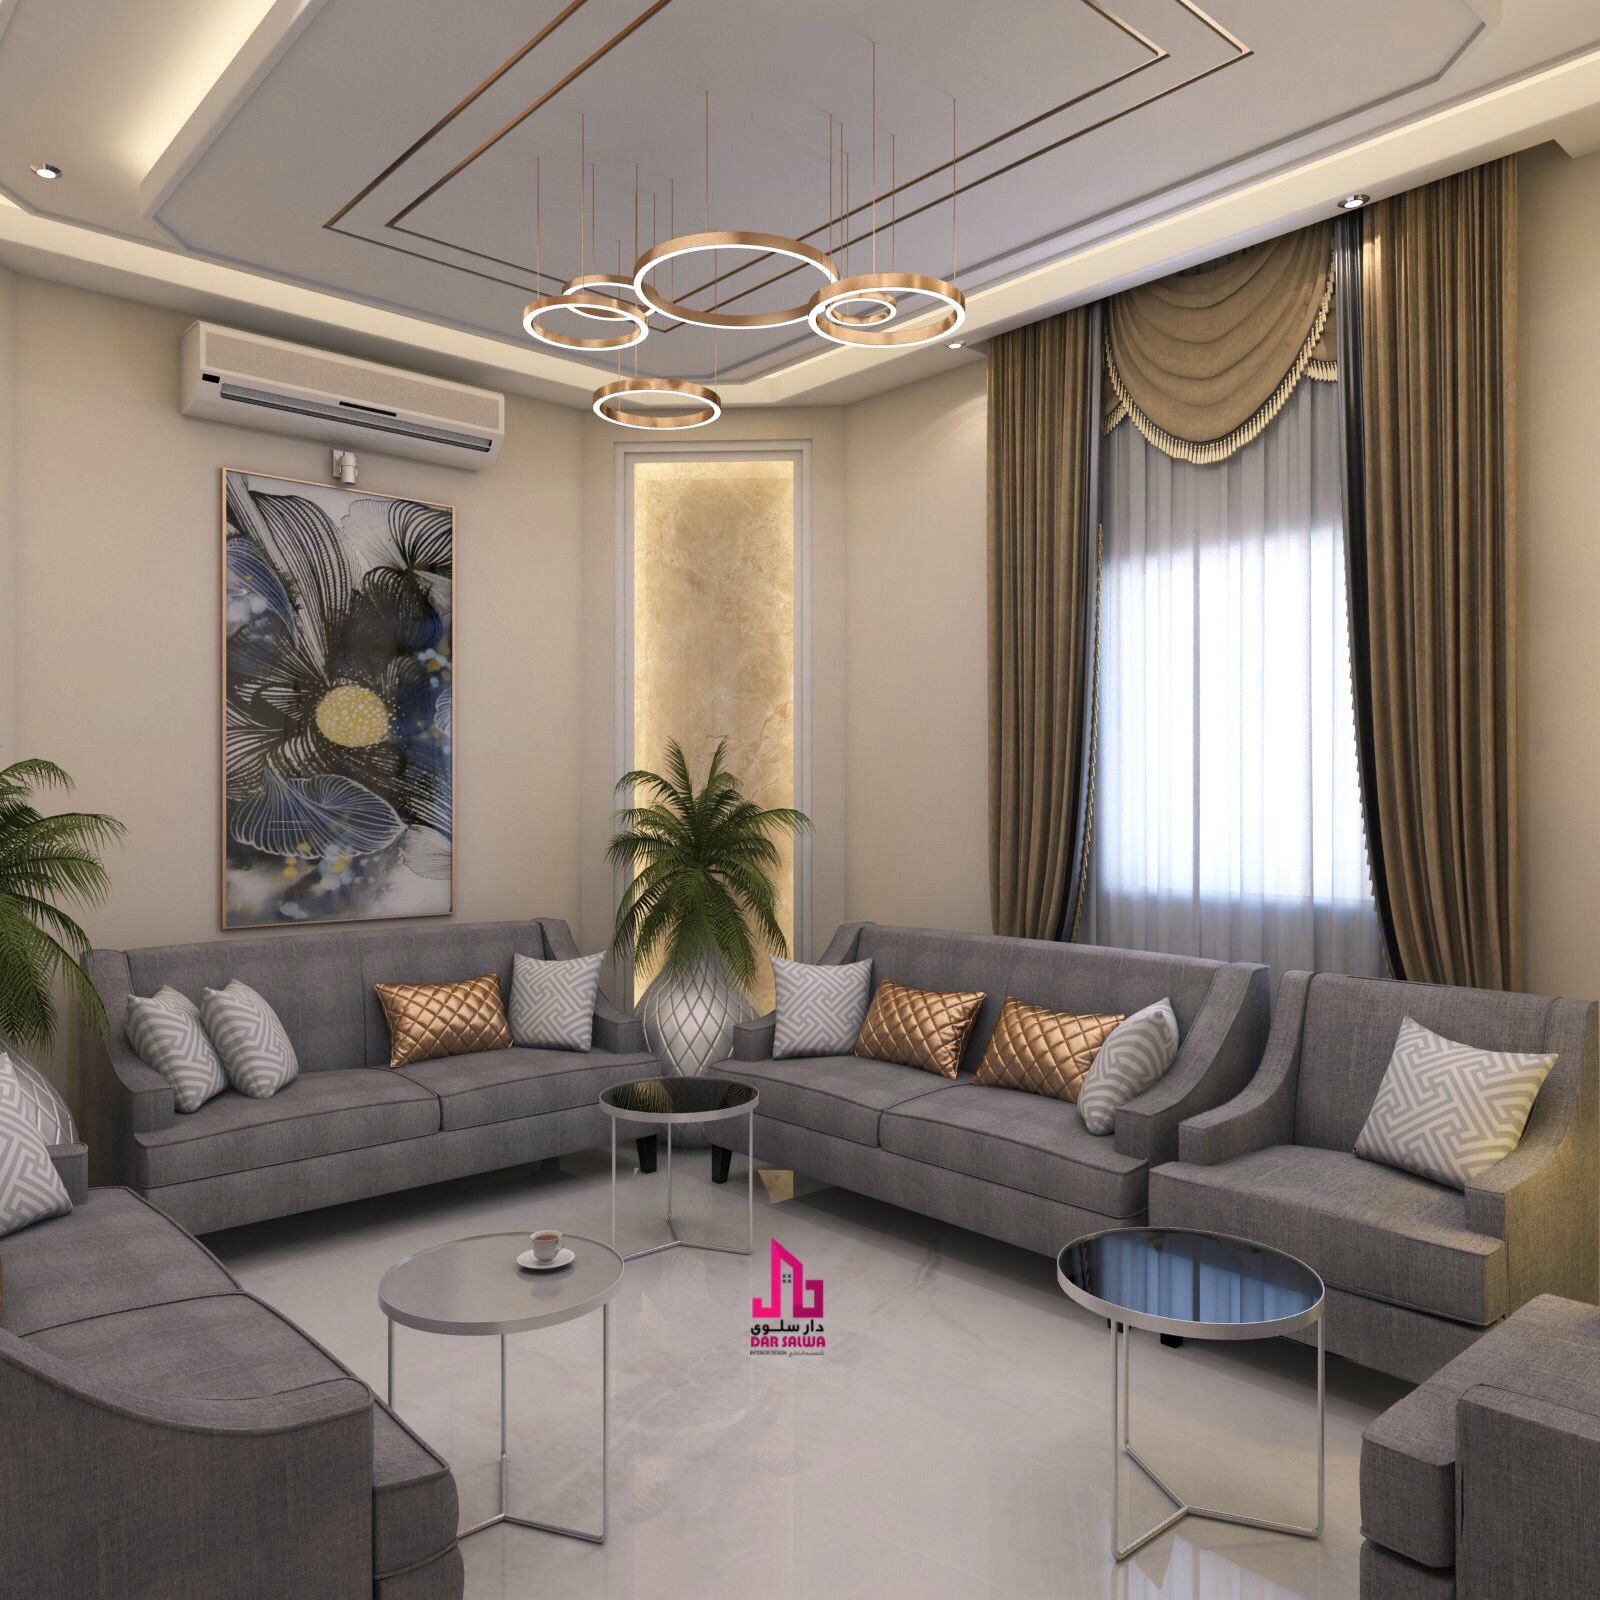 Dar Salwa تصميم ديكور On Twitter Furniture Design Living Room Home Design Living Room Living Room Design Decor